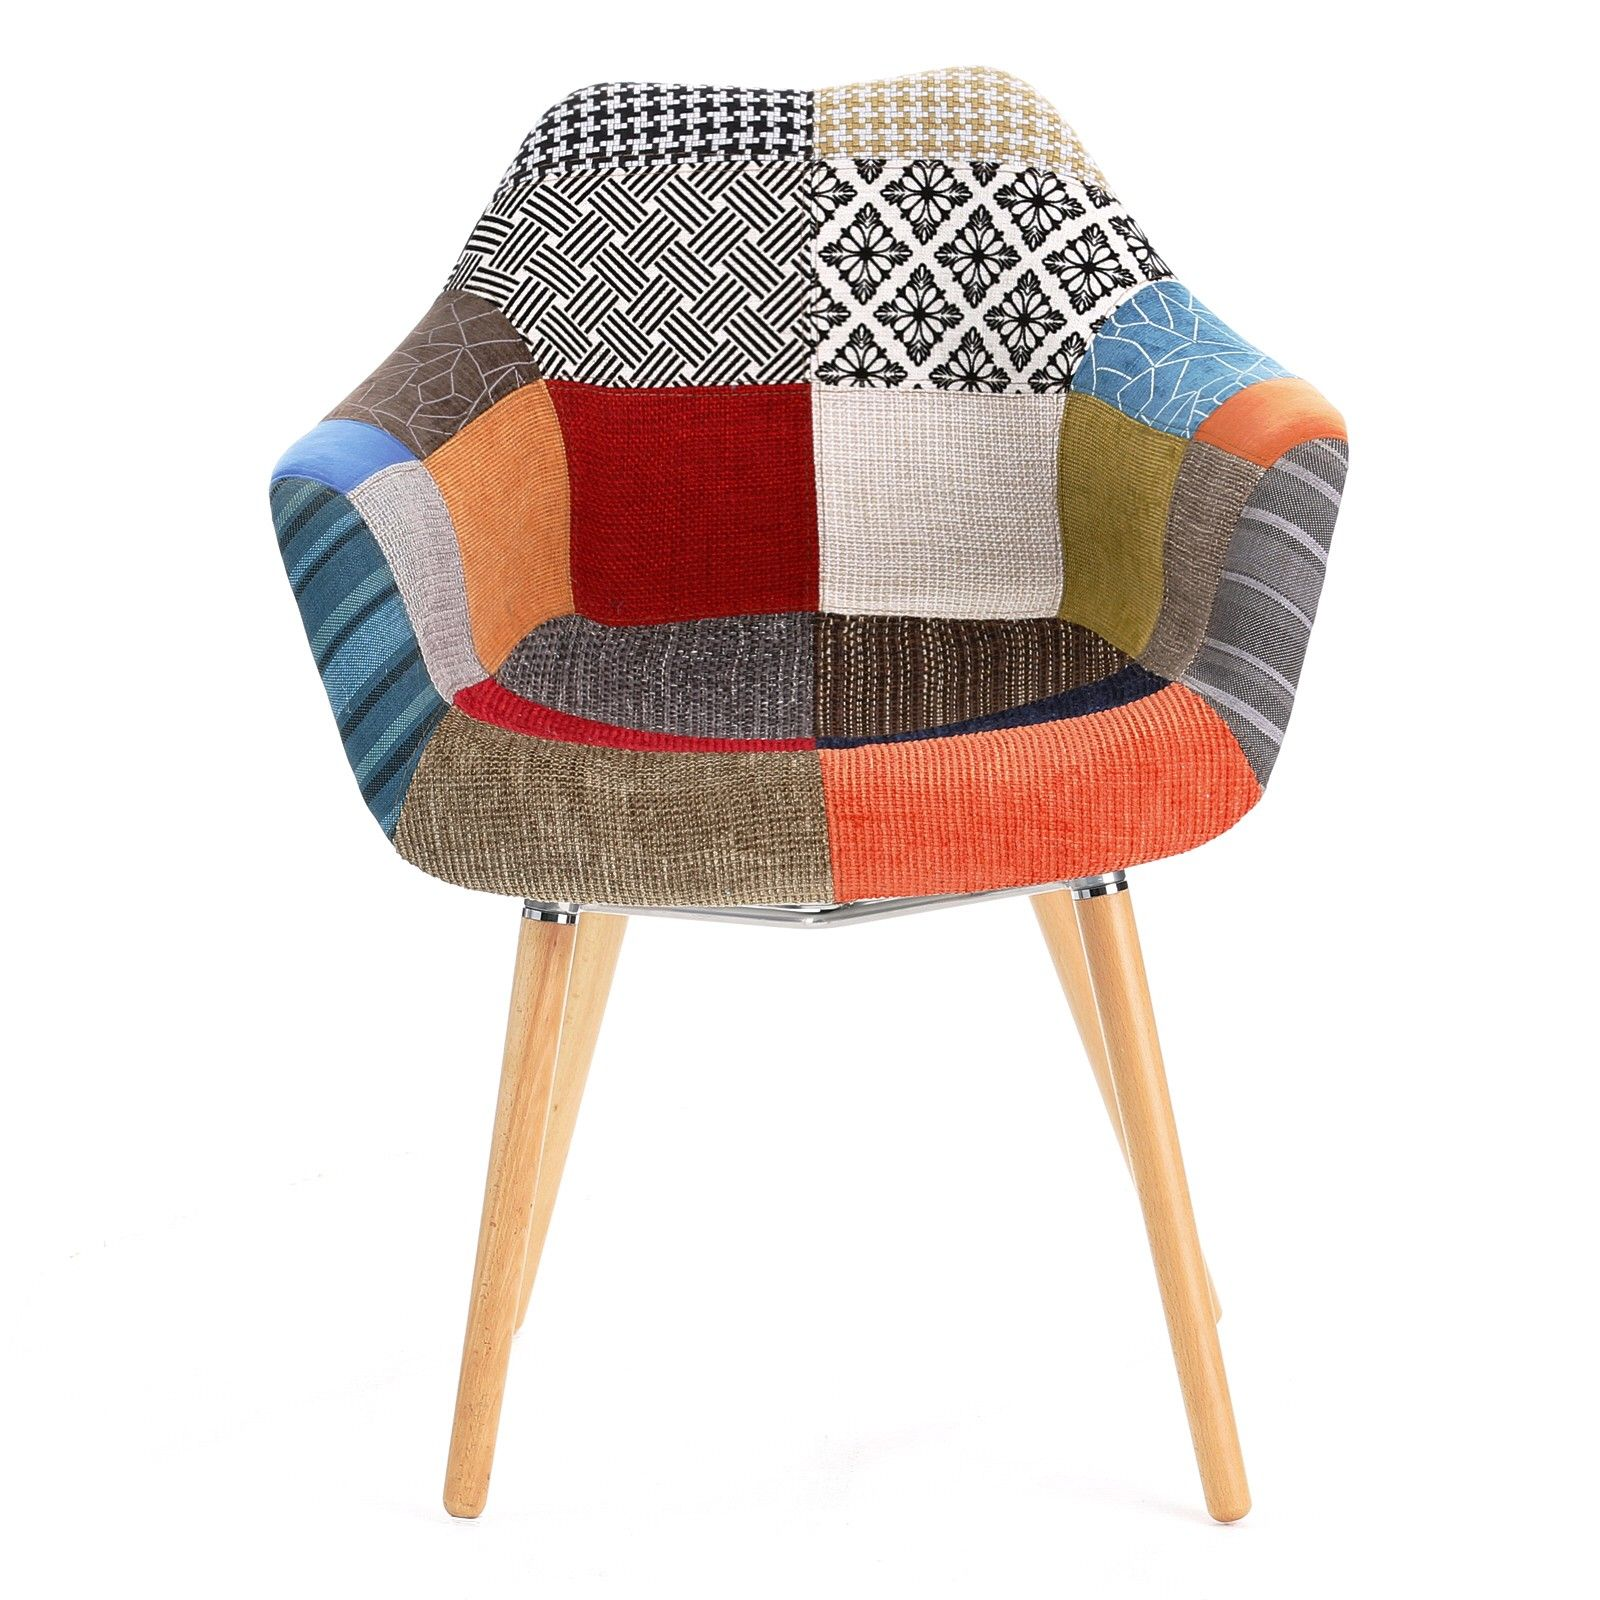 With metal bottom  Patchwork Replica Organic Chair  Betty Version  Nick  Scali Online   Furniture   Pinterest   Farmhouse ideas  Apartment furniture  and  With metal bottom  Patchwork Replica Organic Chair  Betty Version  . Eames Saarinen Replica Organic Chair Perth. Home Design Ideas